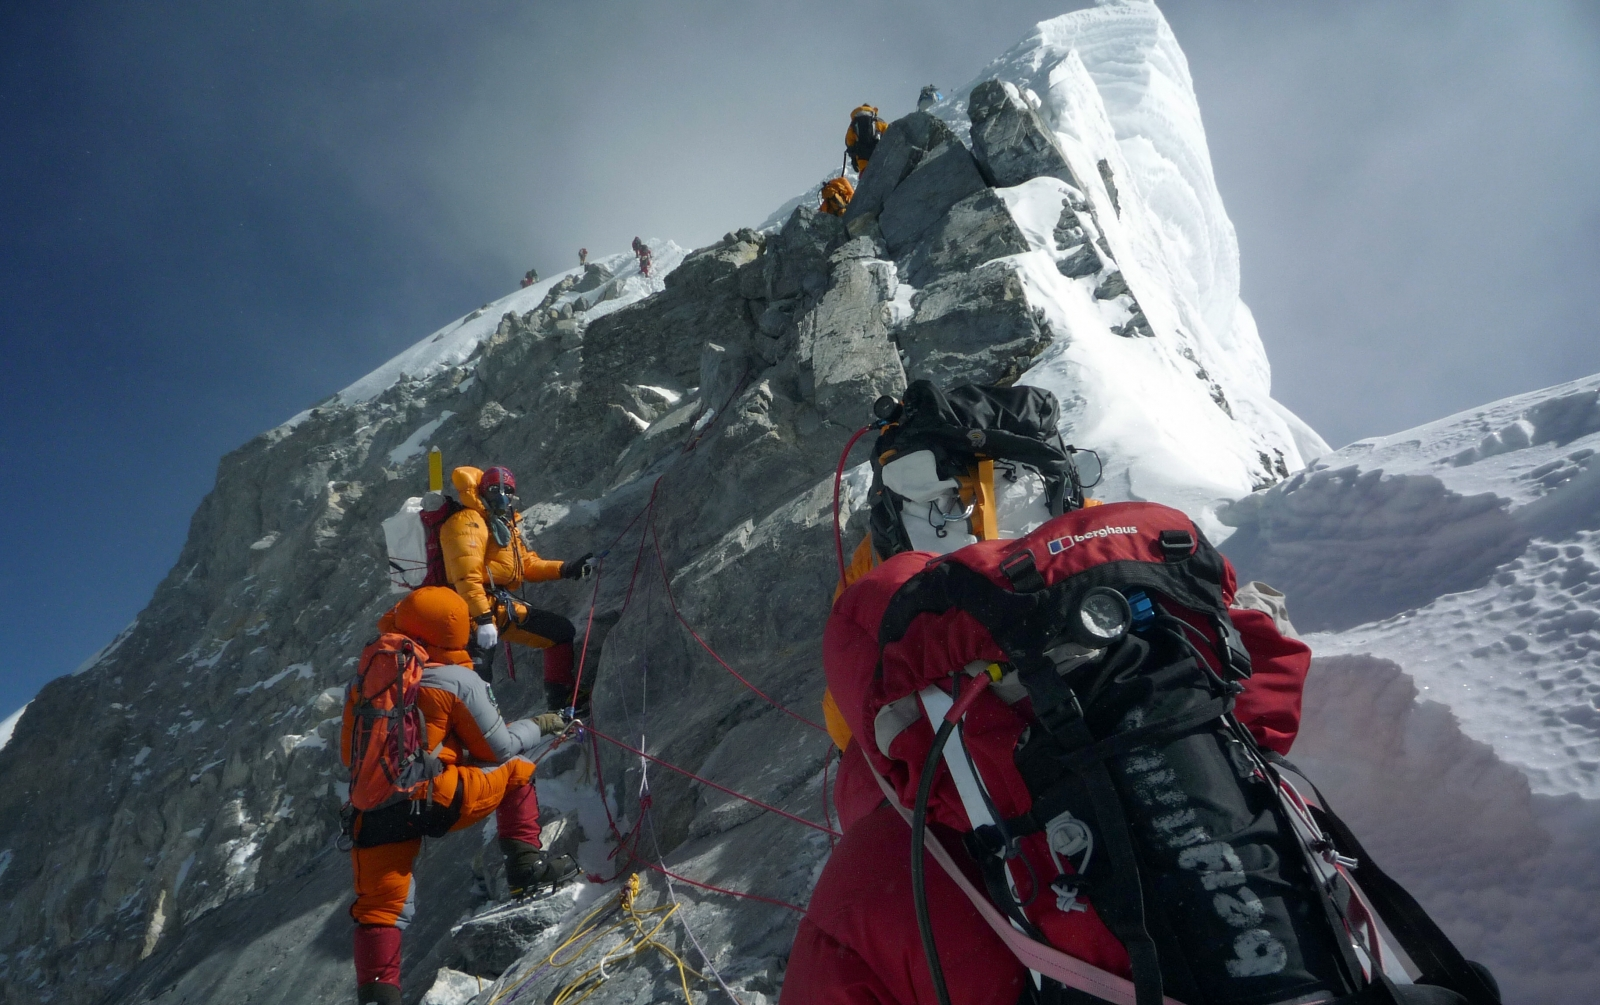 Part of Everest has collapsed, mountaineers confirm